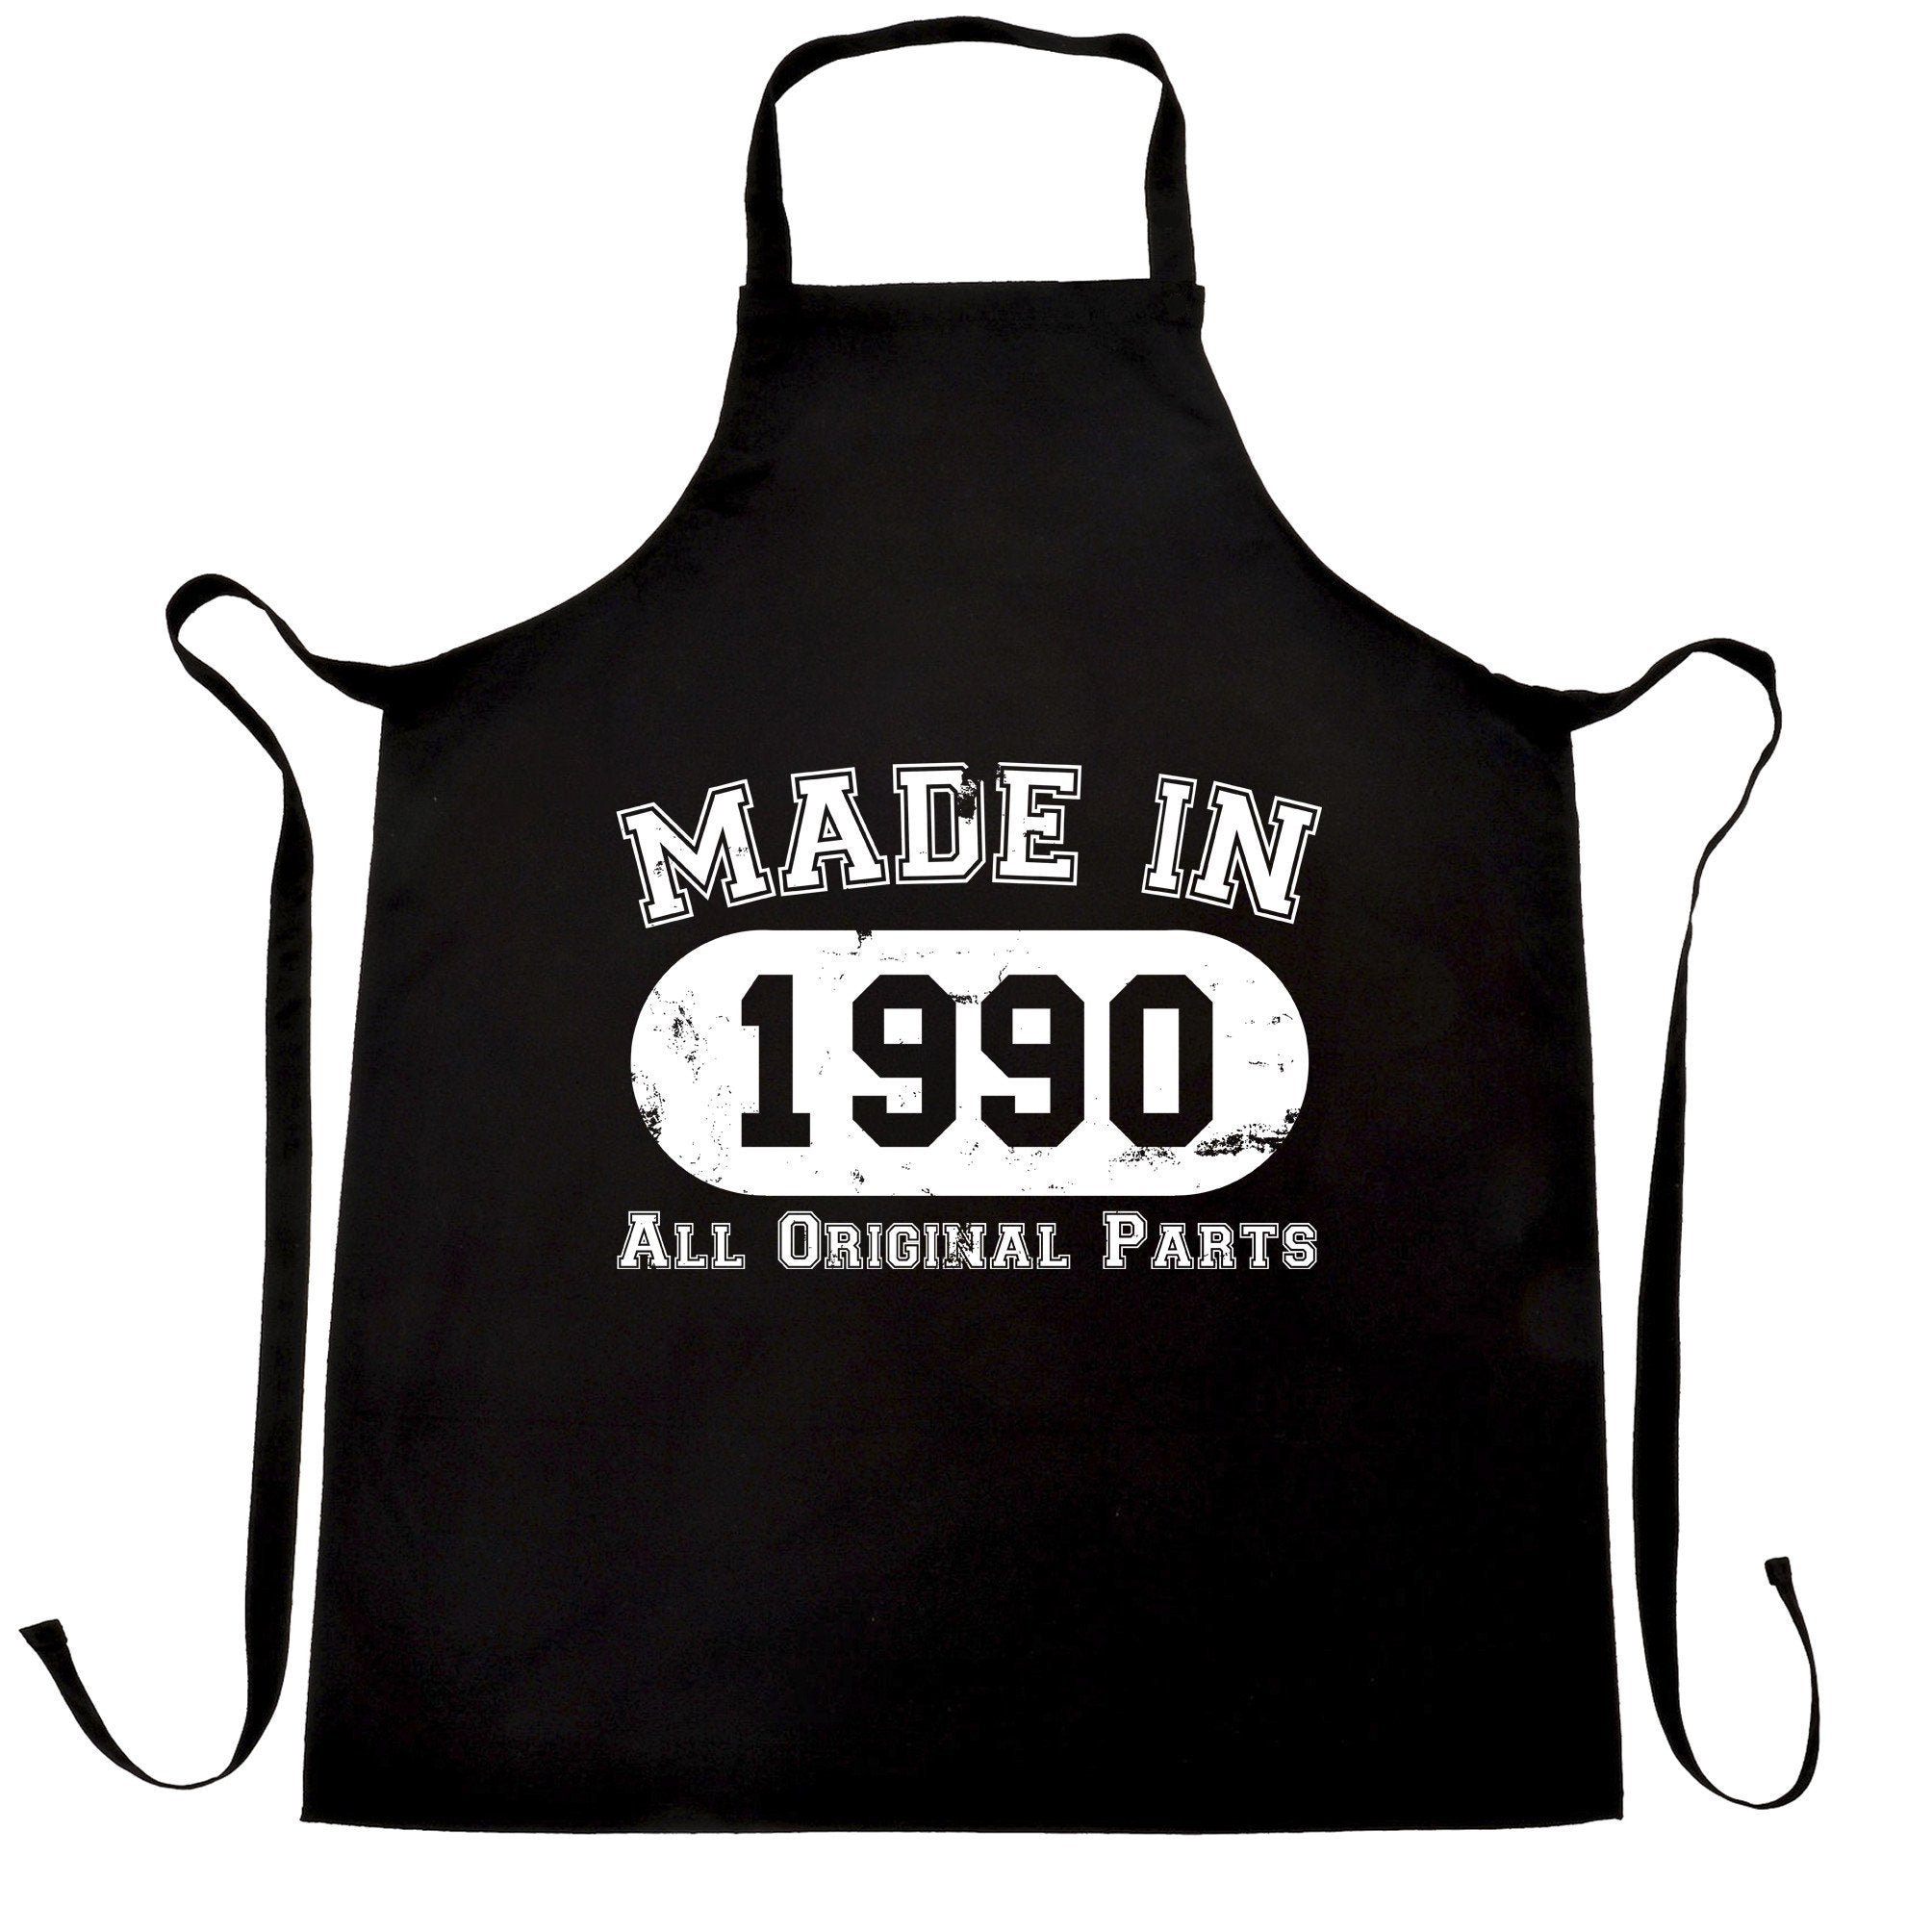 Made in 1990 All Original Parts Apron [Distressed]